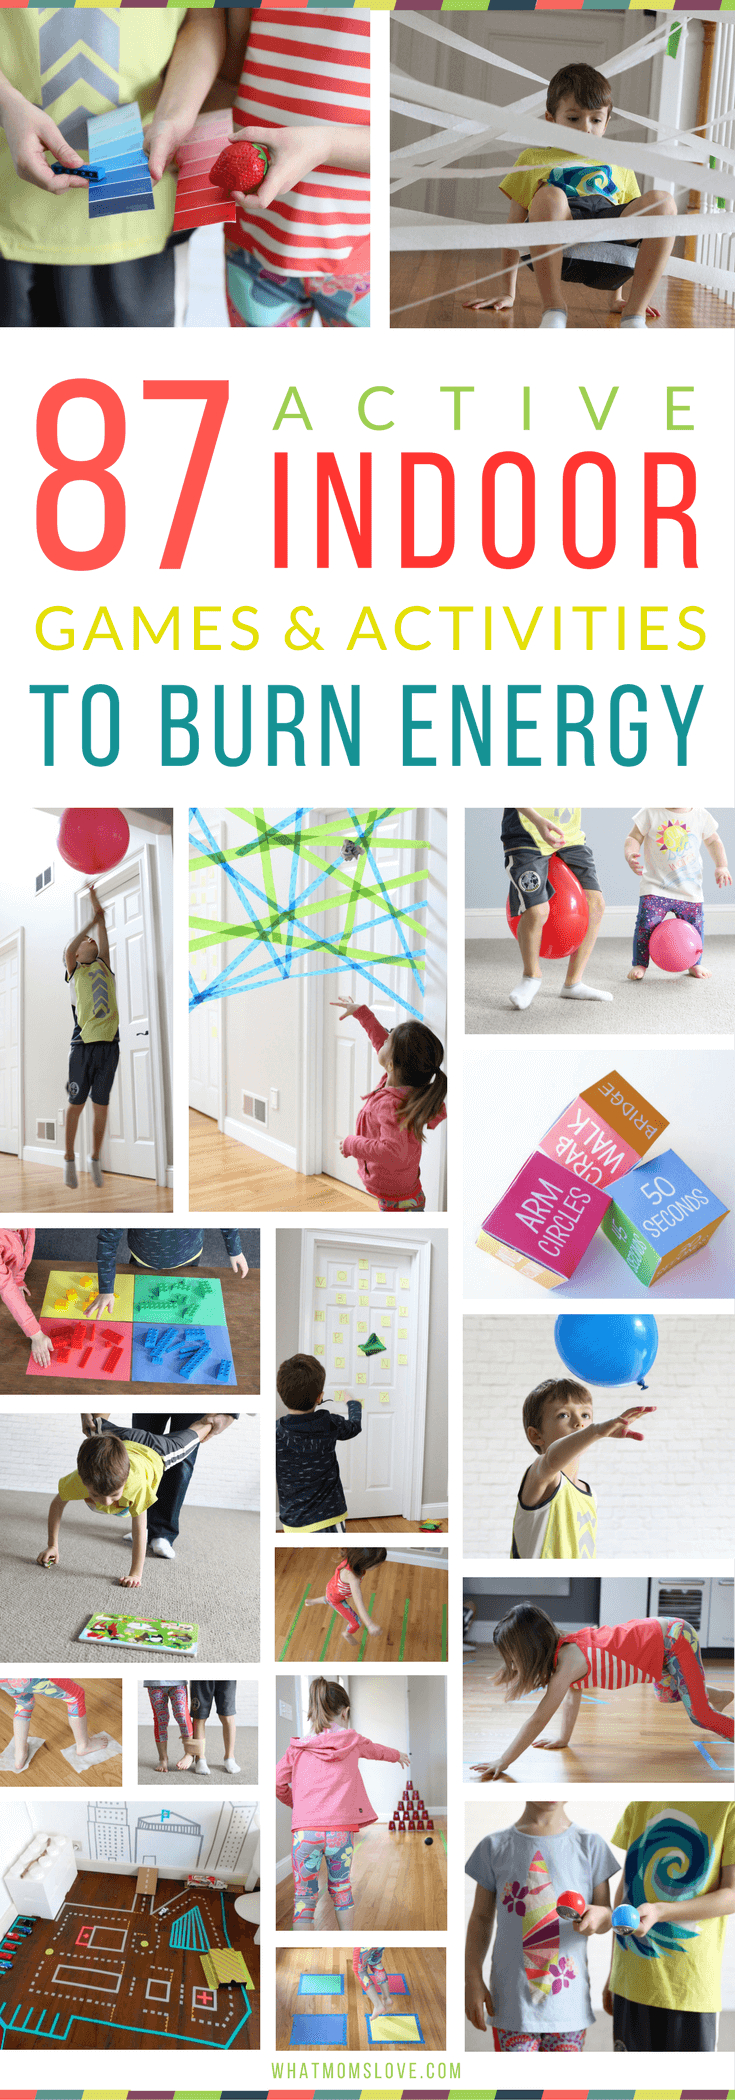 87 energy-busting indoor games & activities for kids (because cabin